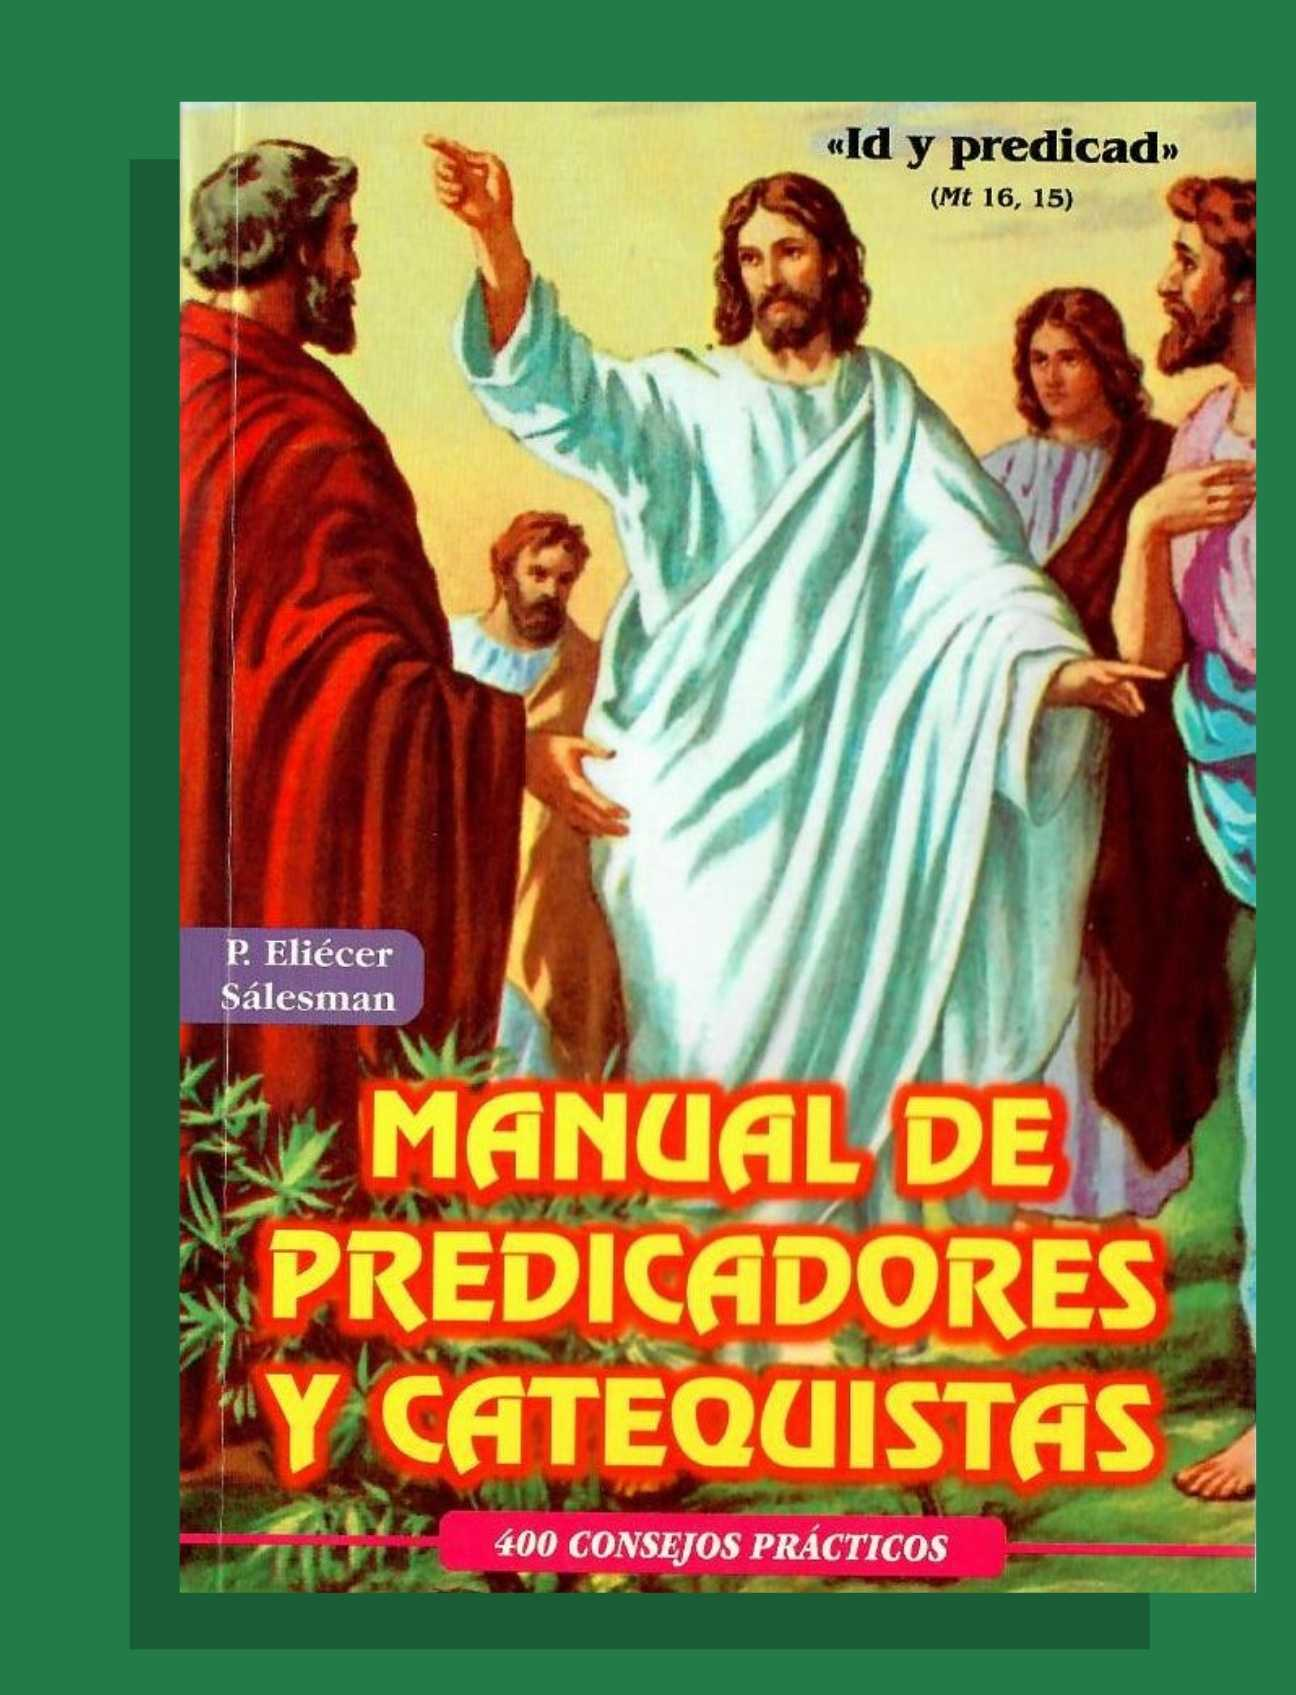 MANUAL DE PREDICADORES Y CATEQUISTAS